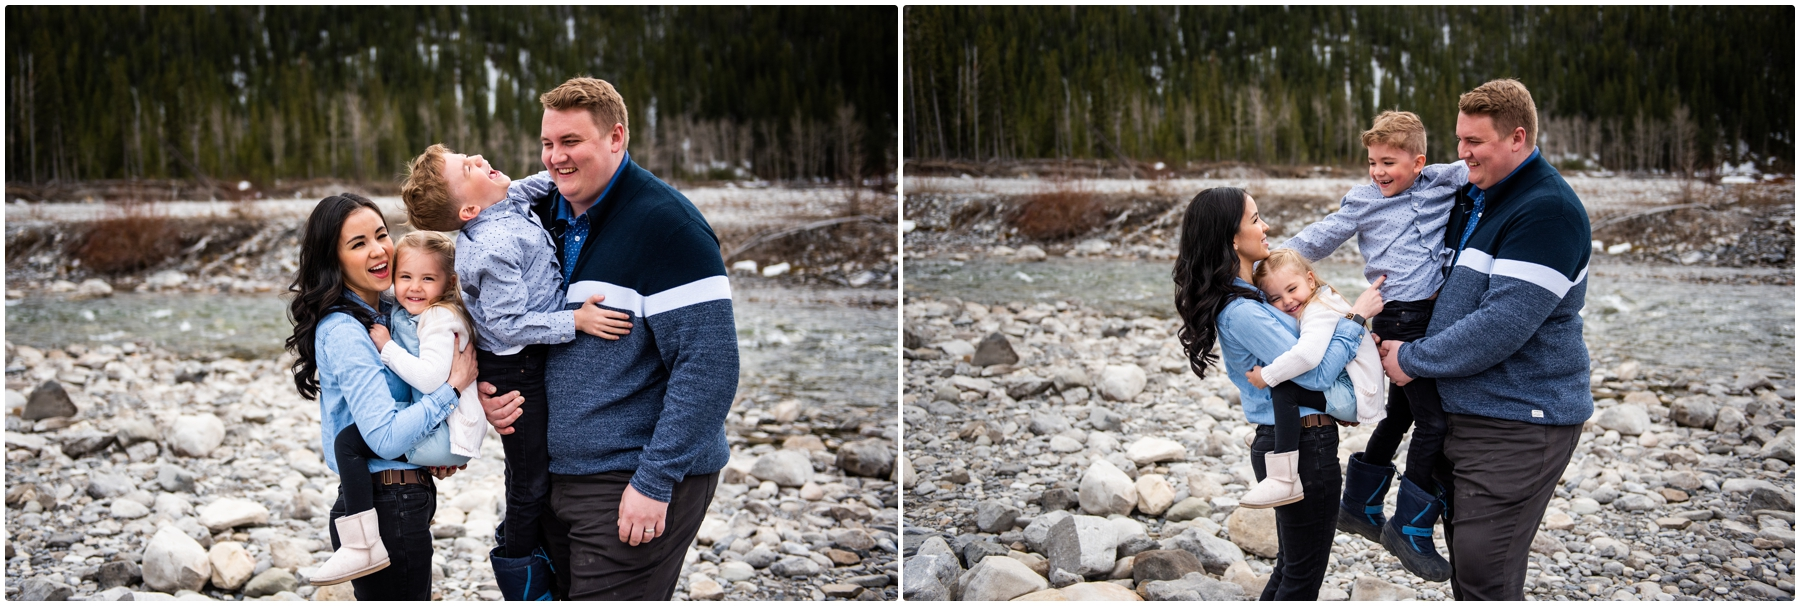 Elbow Falls Family Photographers